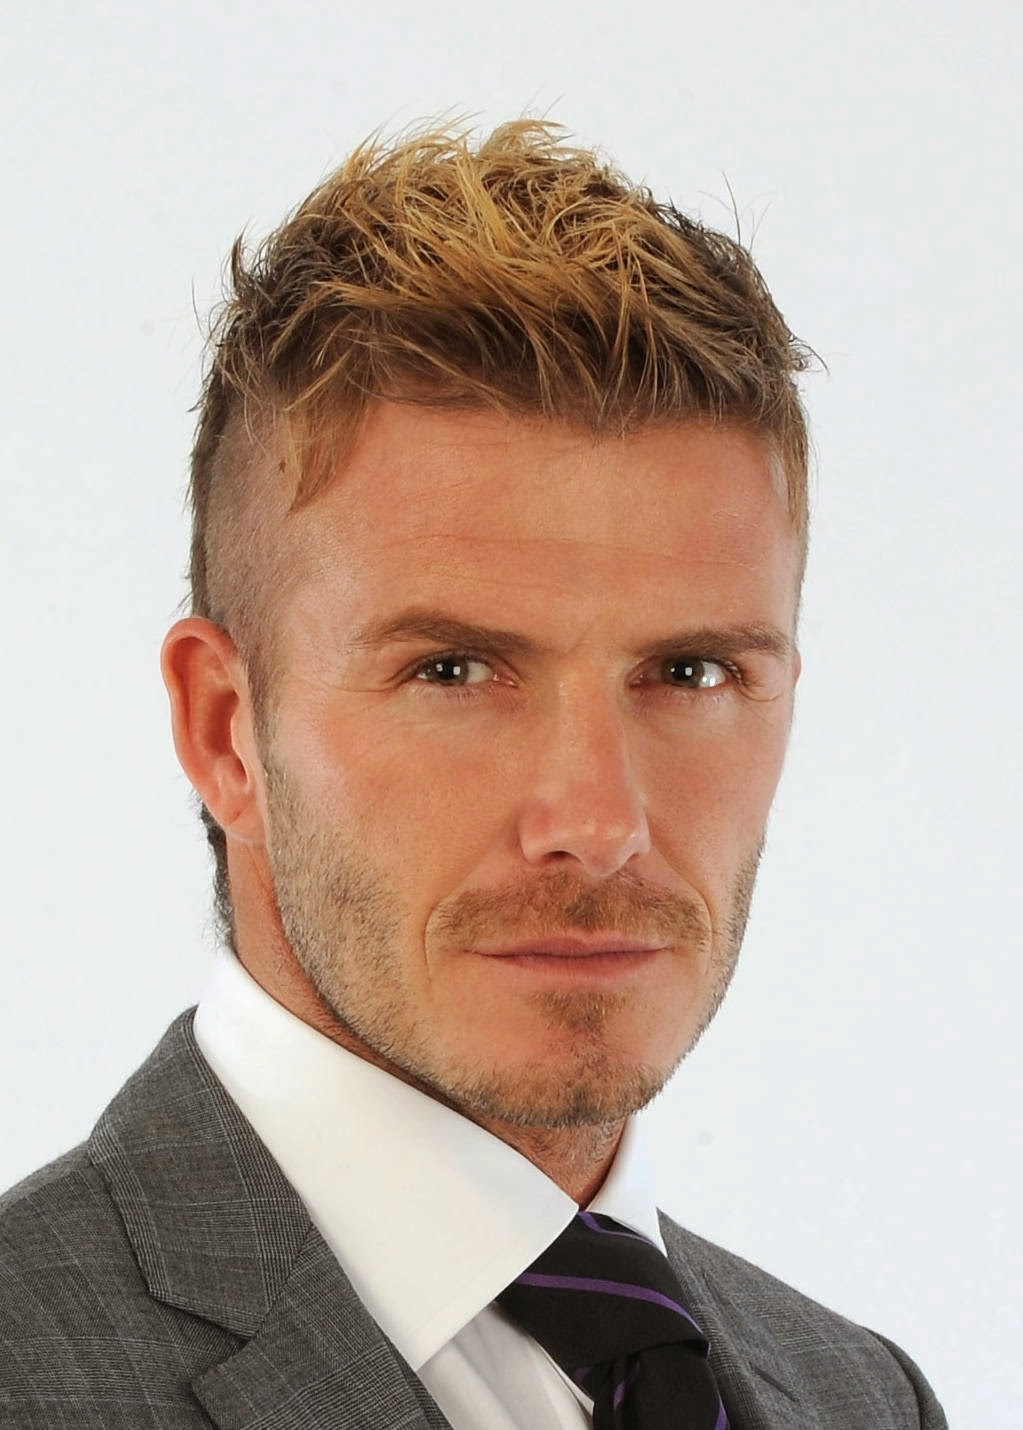 Mens Short Hairstyles Most Popular In 2013 Cute Hair Style